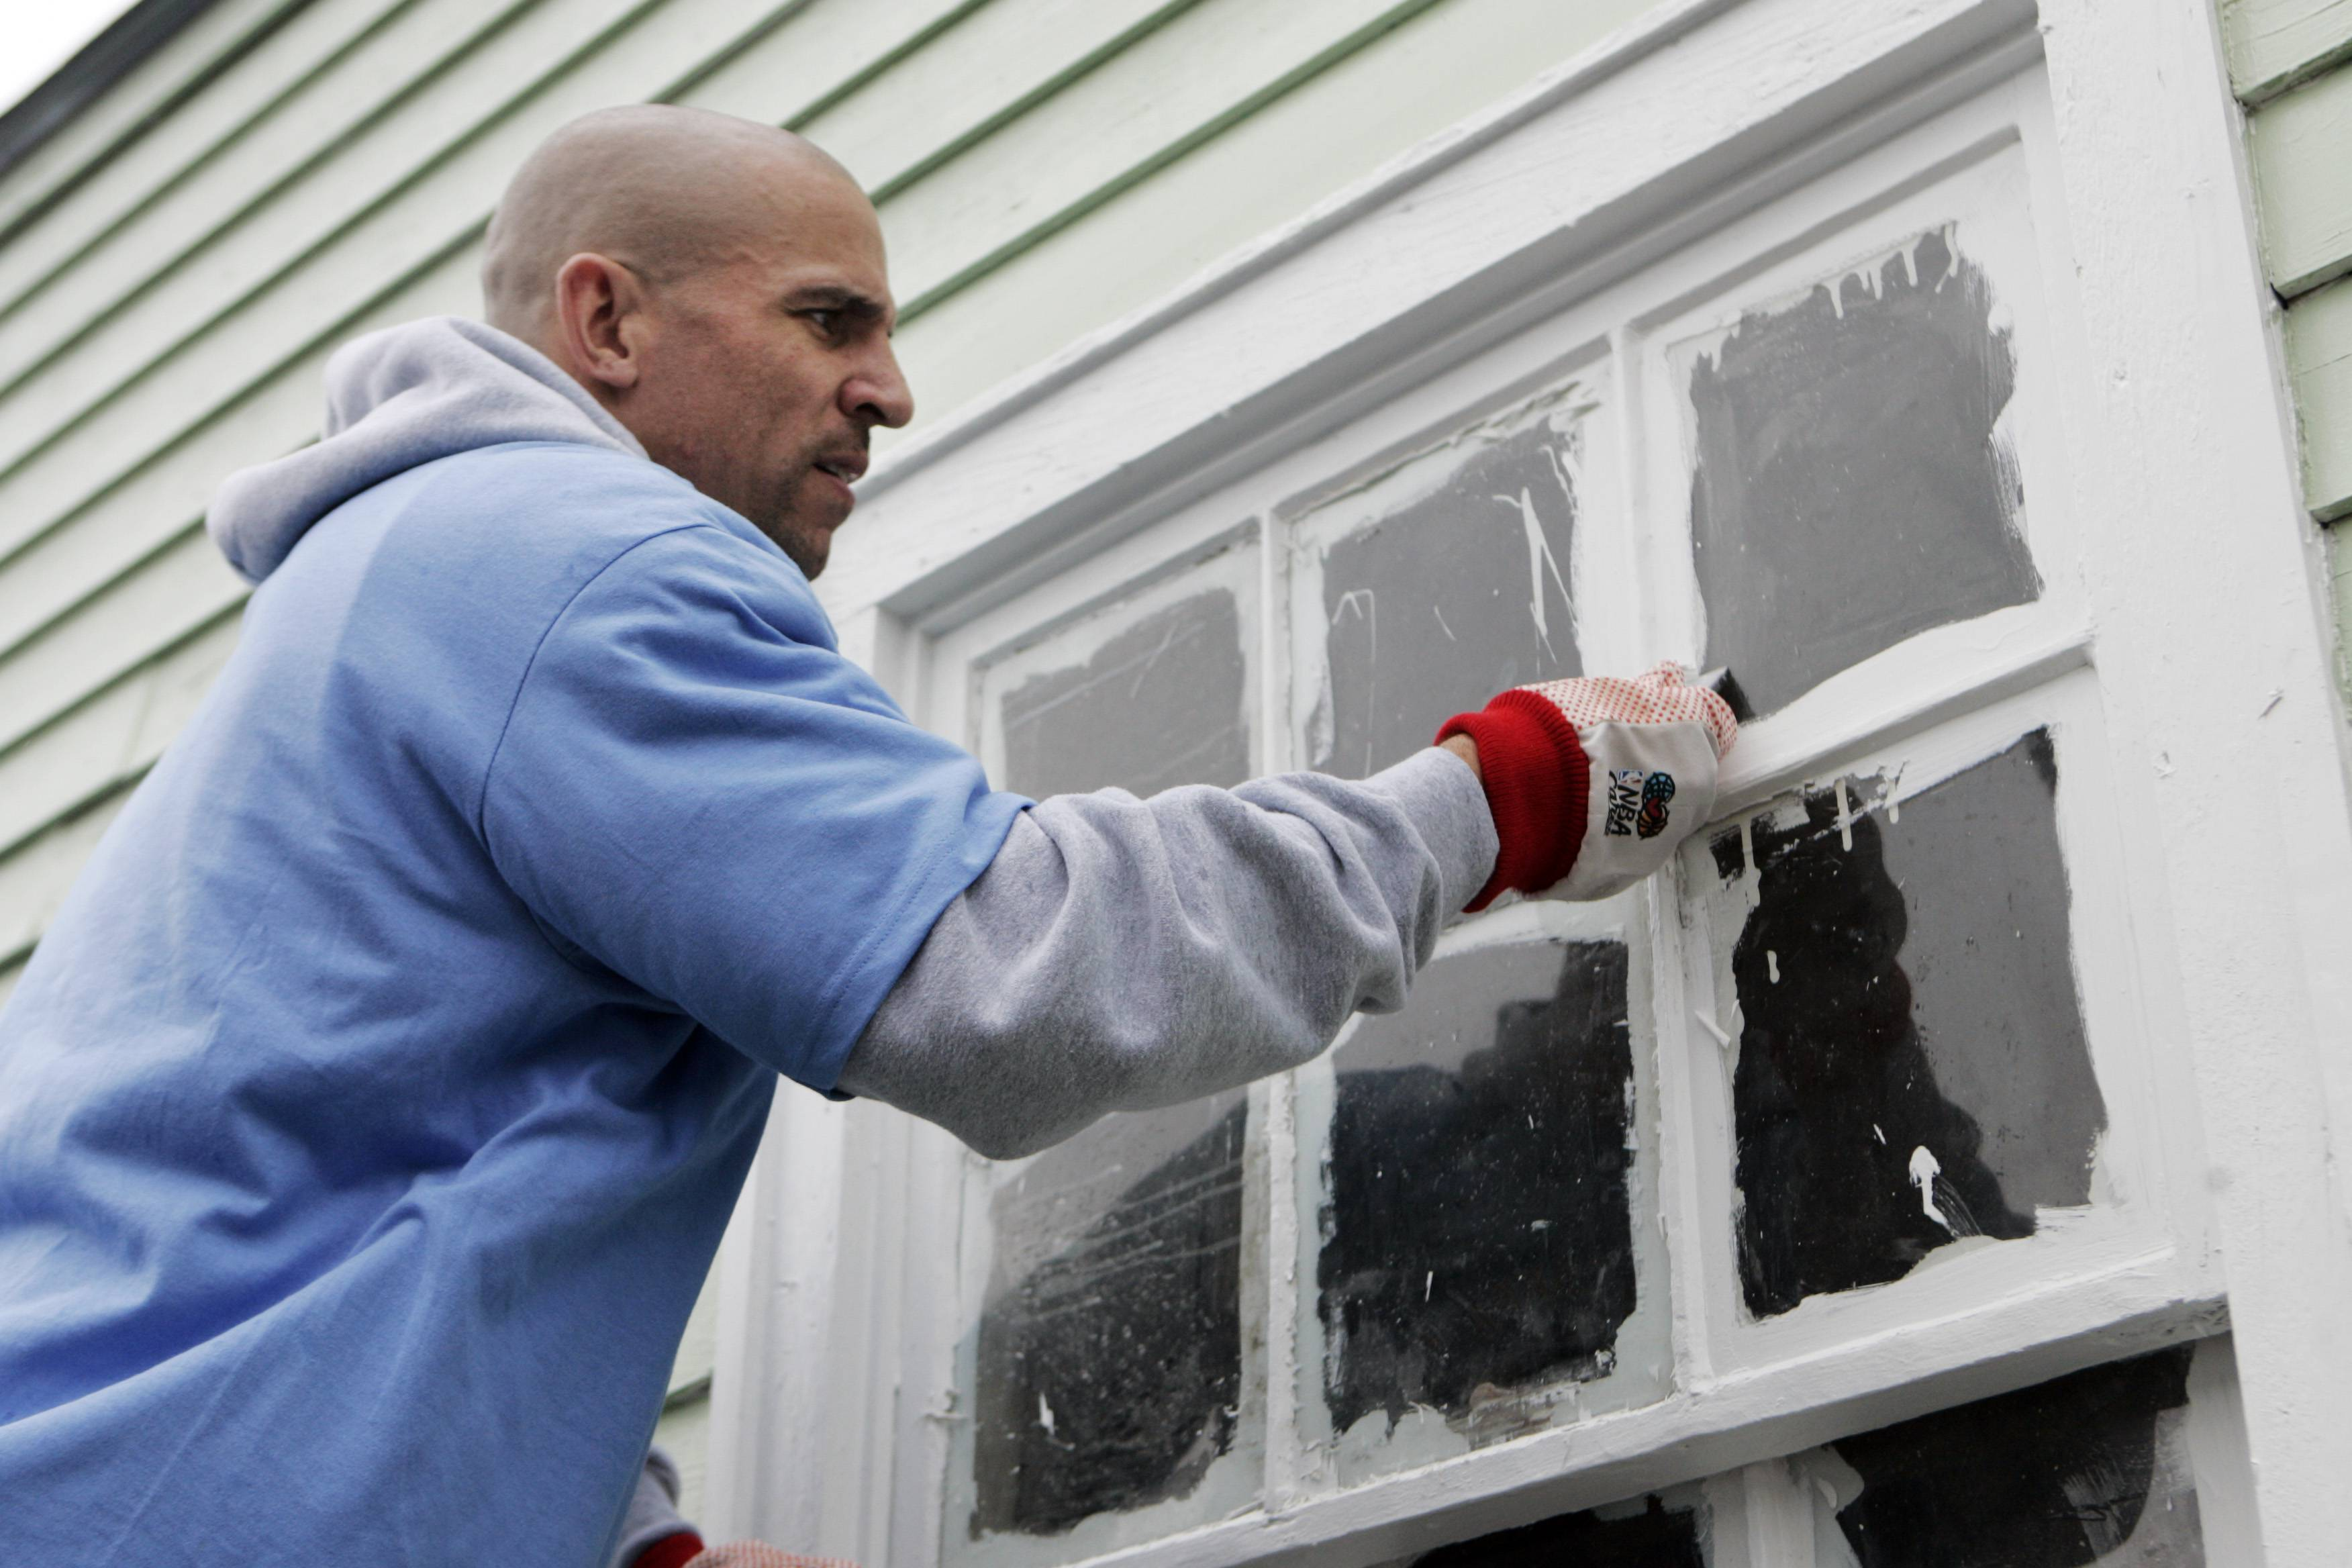 FILE - In this Feb. 15, 2008 file photo, NBA basketball star Jason Kidd works on a home in the Lower 9th ward of New Orleans. This week marks six years since NBA All-Stars ventured into New Orleans neighborhoods devastated by Hurricane Katrina to lend a hand with rebuilding. (AP Photo/Bill Haber, File)